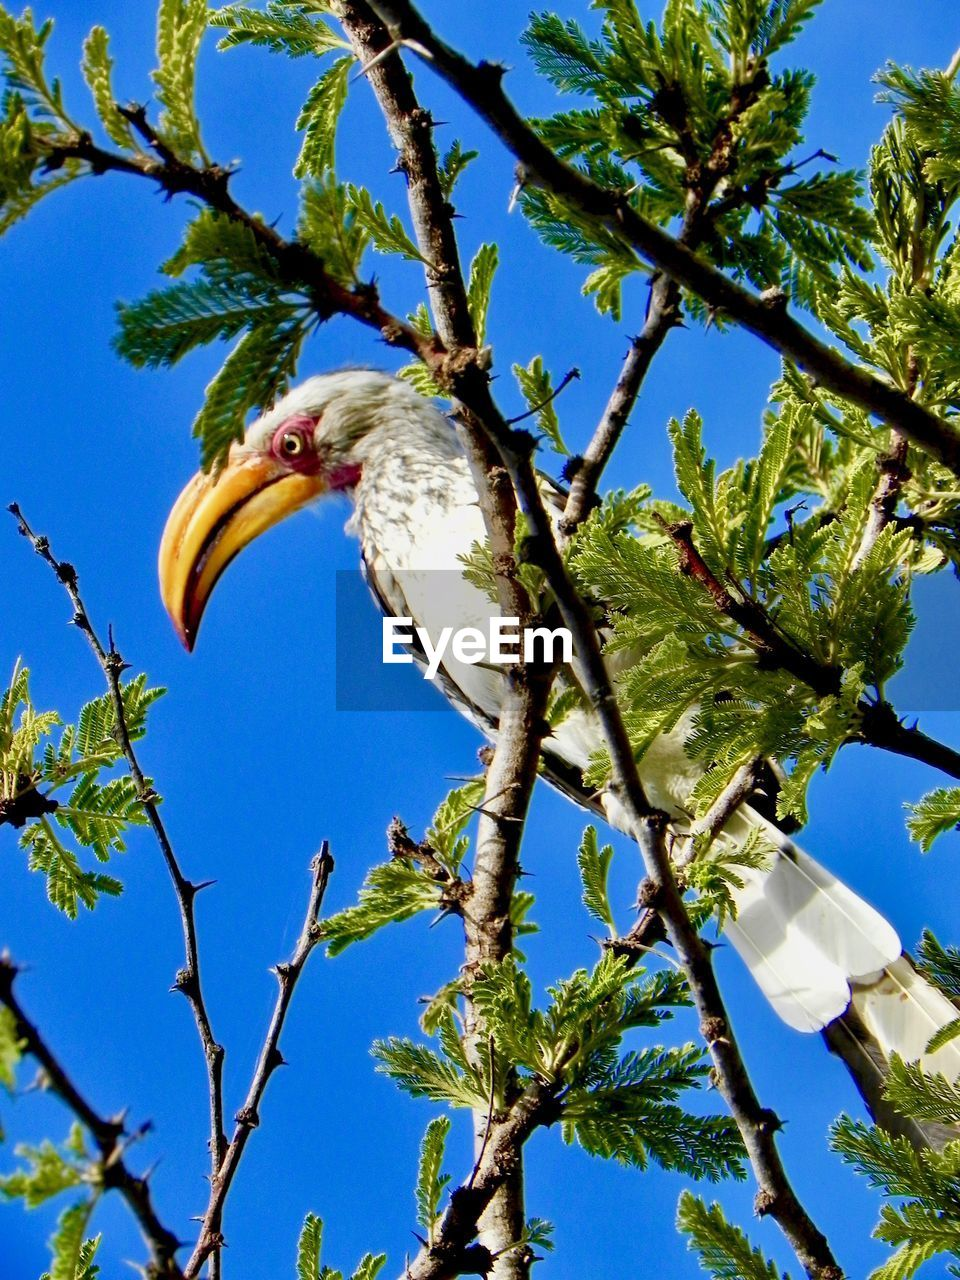 tree, bird, animal, animal wildlife, plant, animal themes, animals in the wild, vertebrate, low angle view, branch, one animal, sky, no people, day, nature, perching, sunlight, clear sky, blue, outdoors, eagle